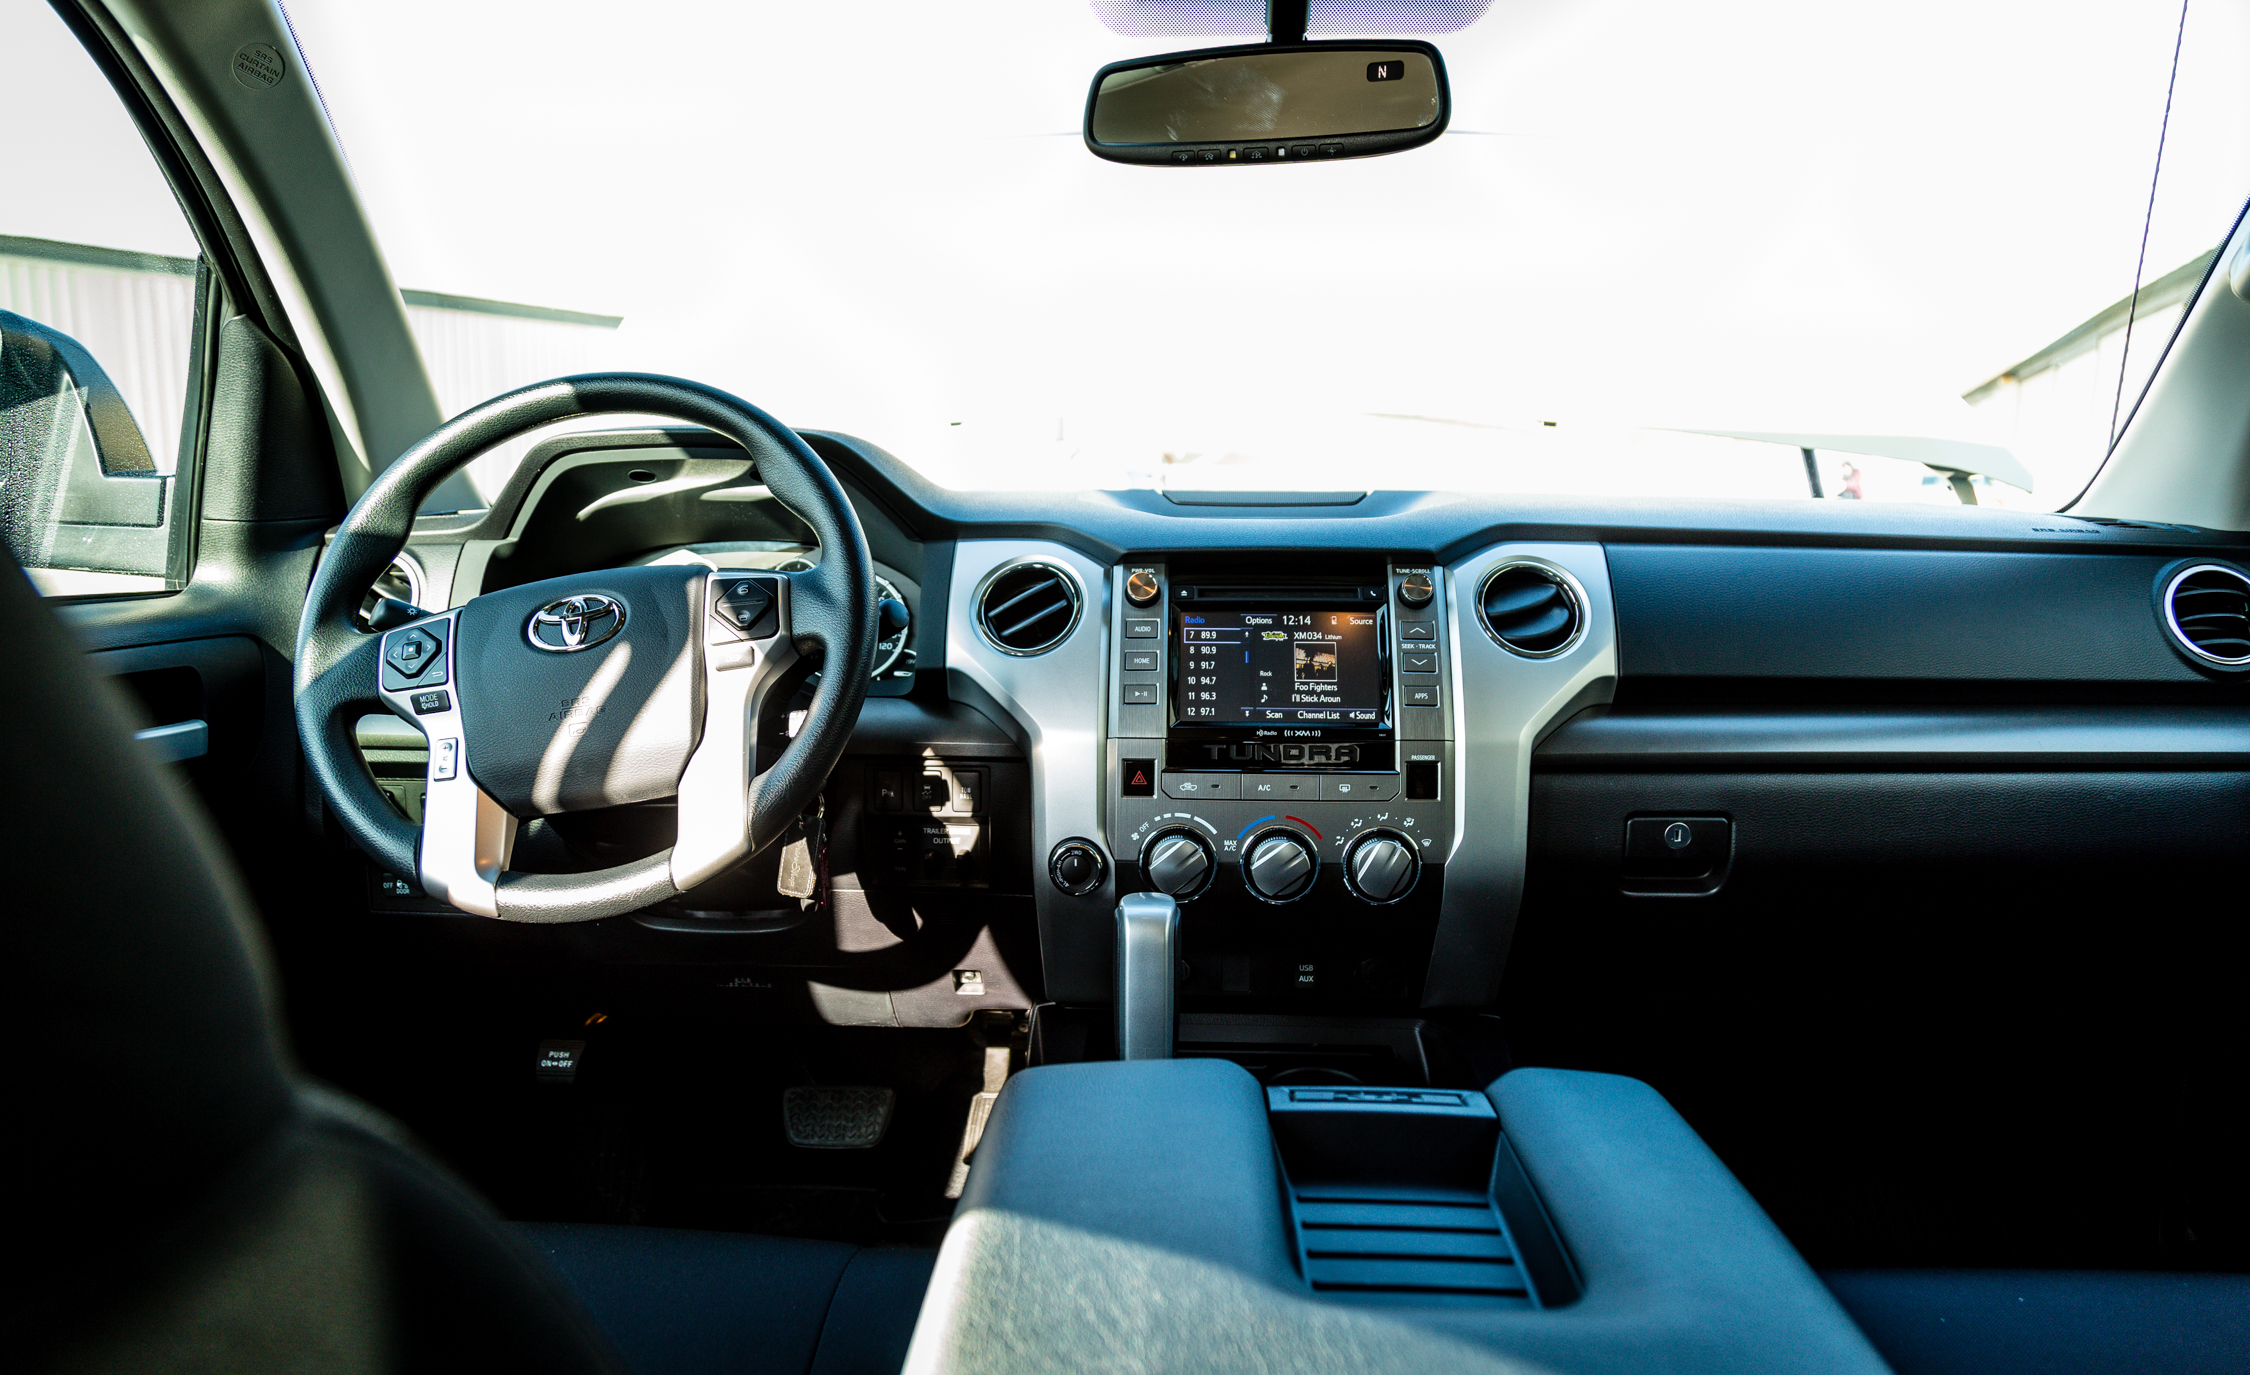 2017 Toyota Tundra Interior (Photo 7 of 24)